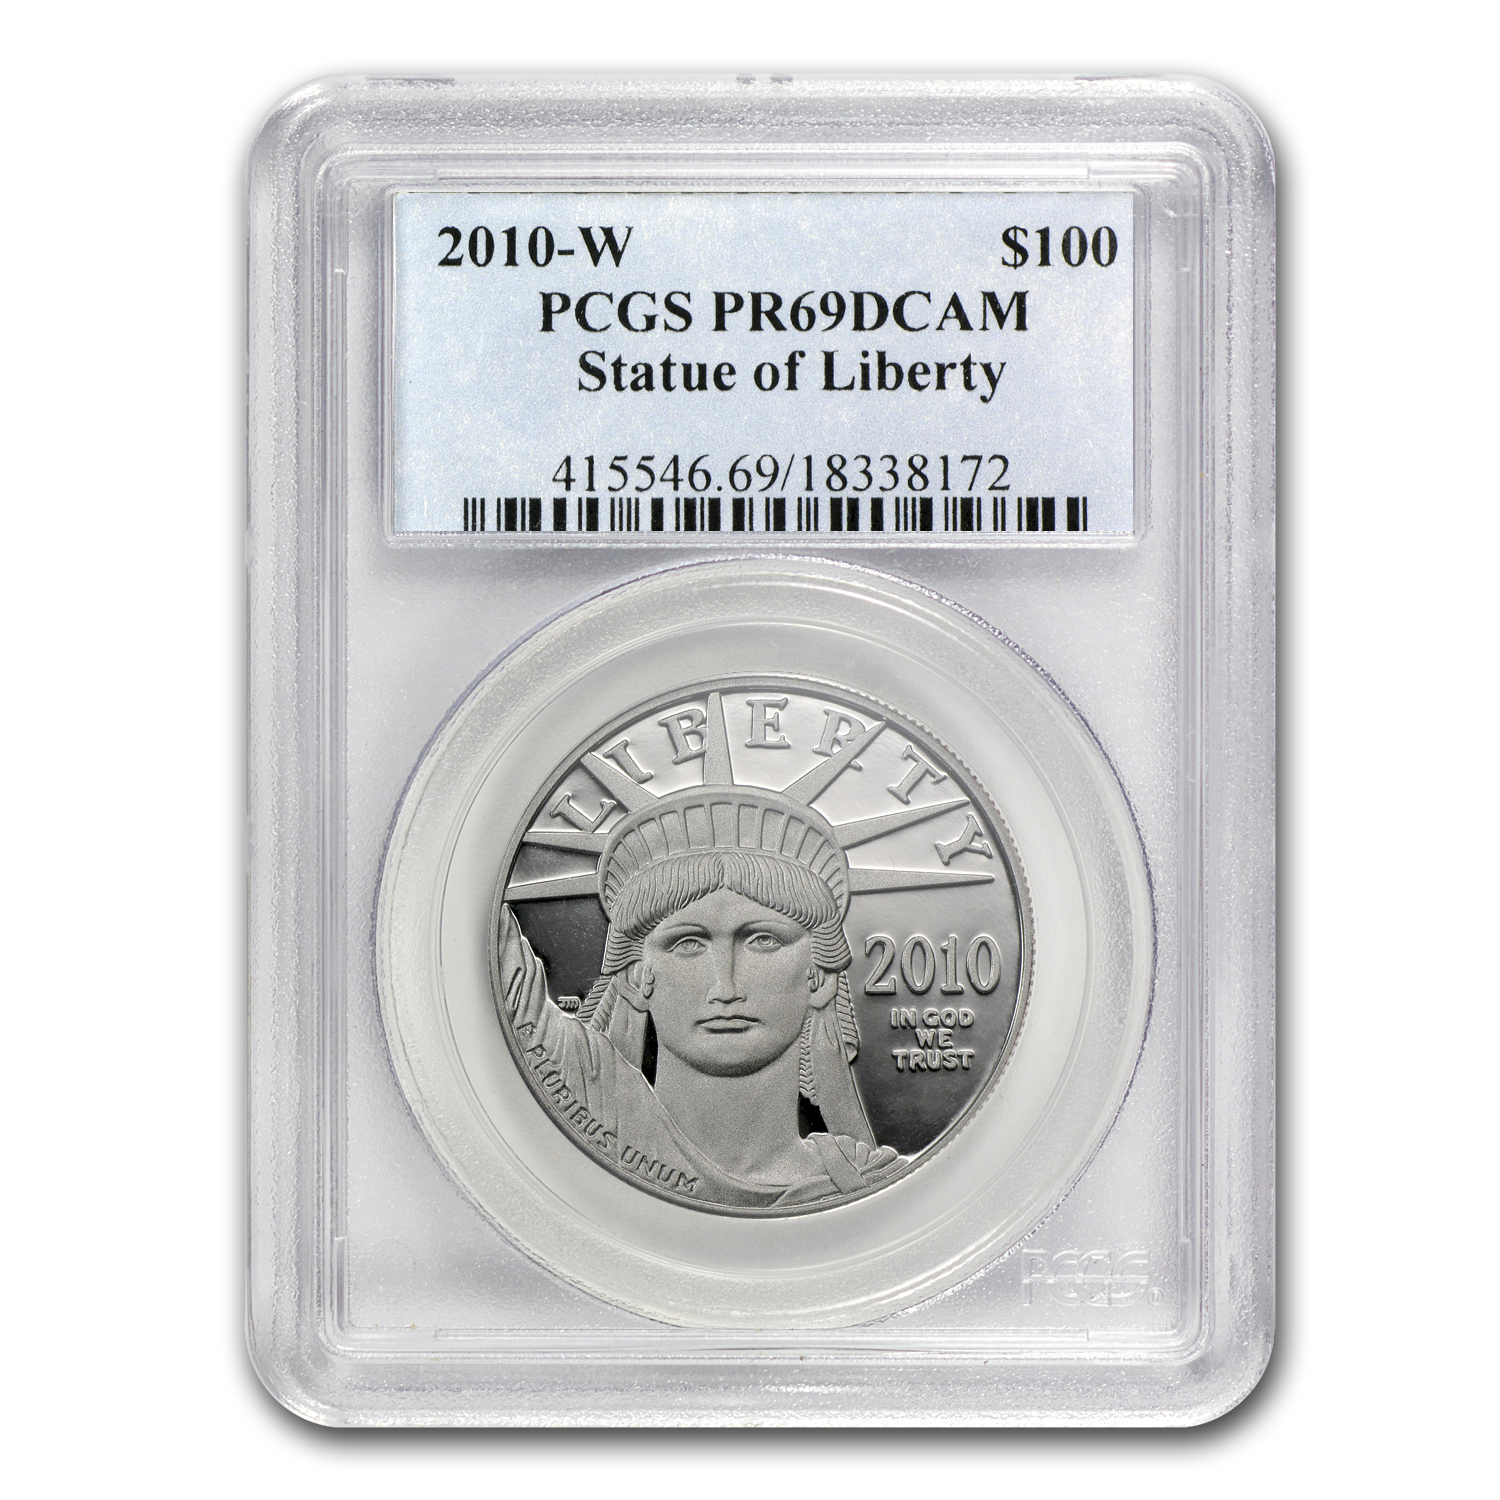 2010-W 1 oz Proof Platinum American Eagle PR-69 PCGS